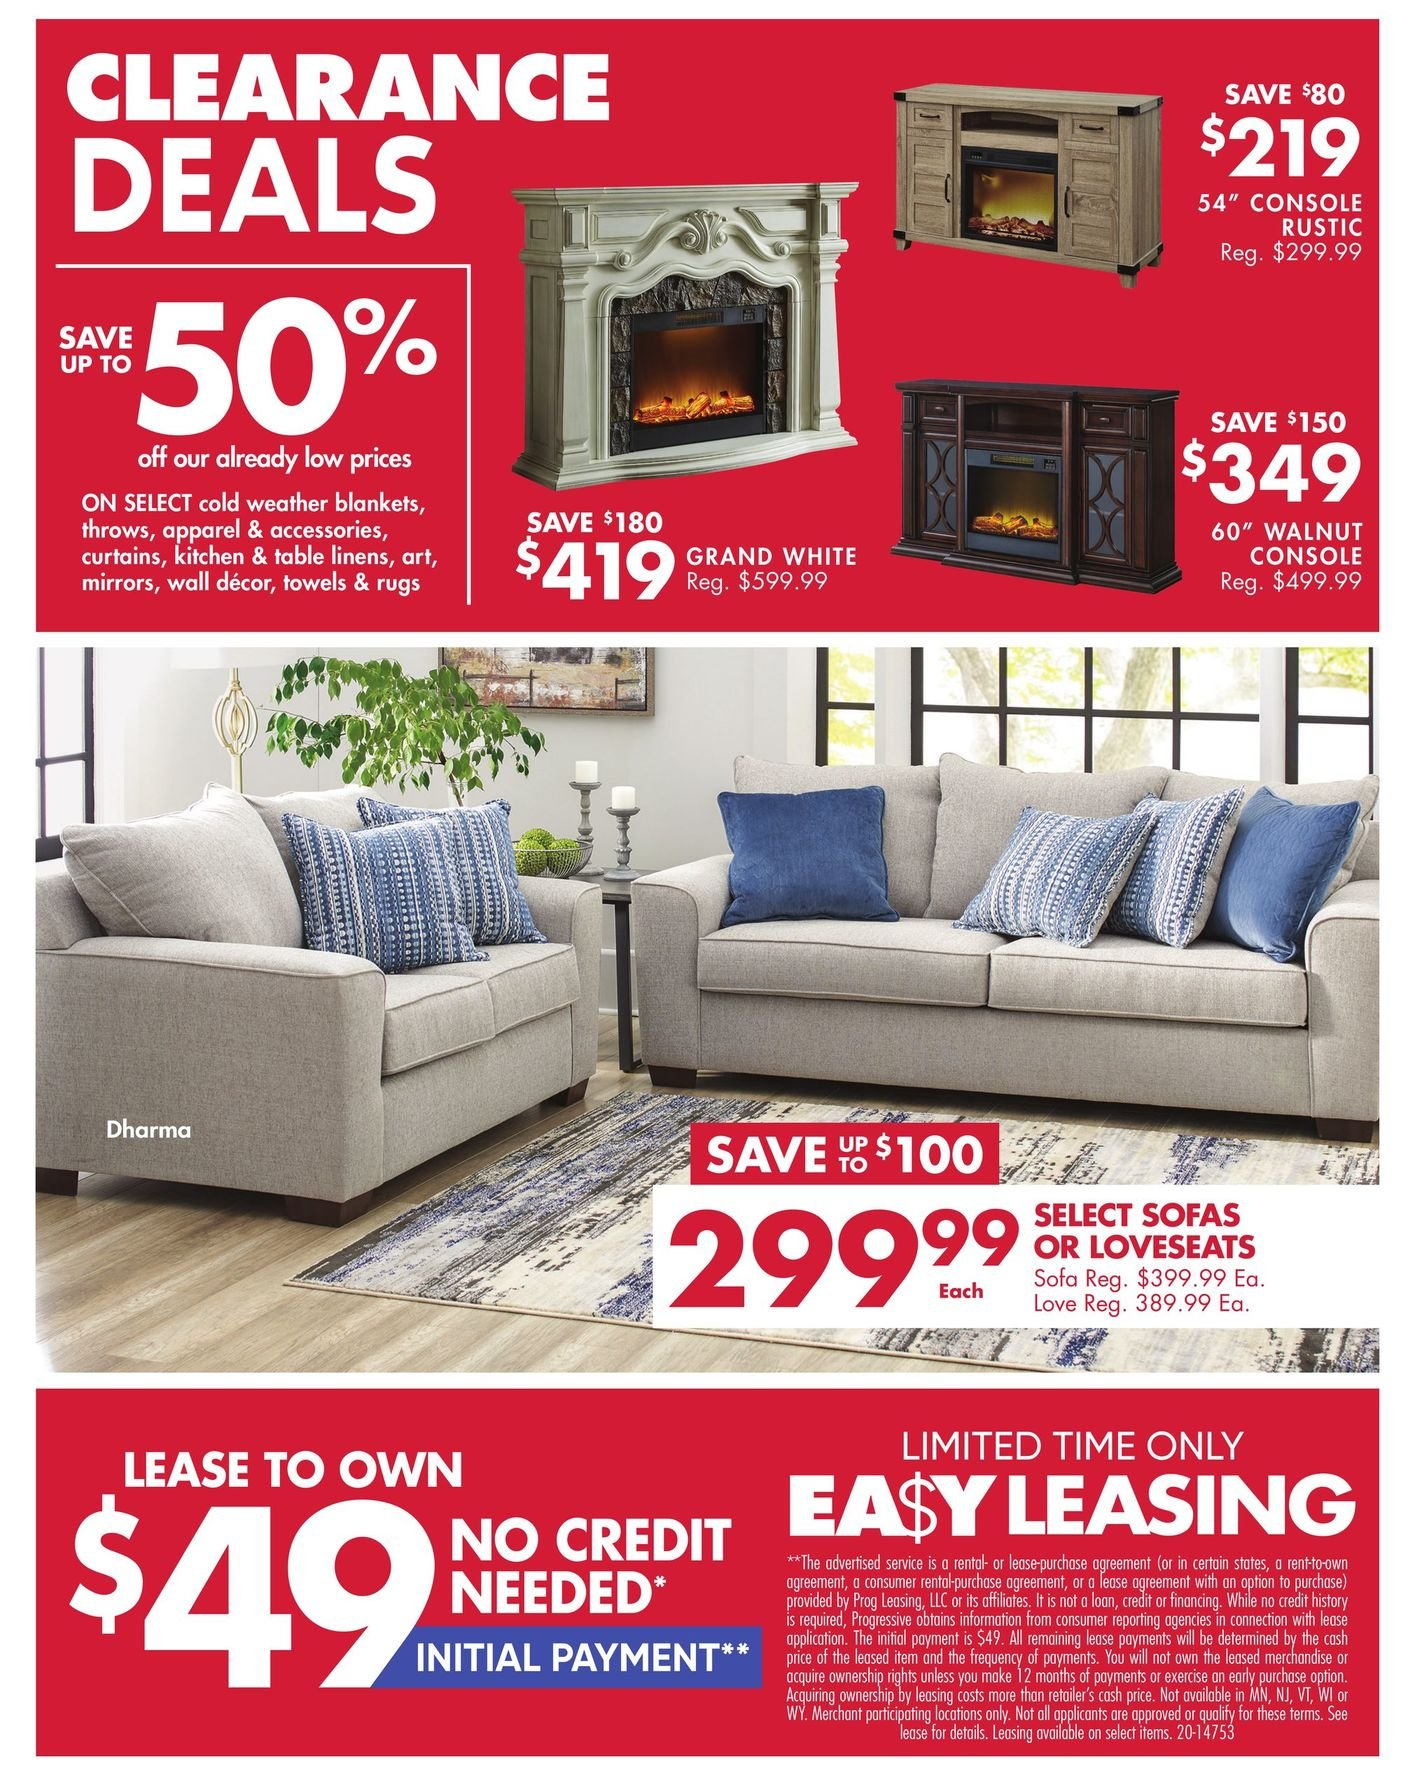 Big Lots Weekly February 22 - 29, 2020 Page 2